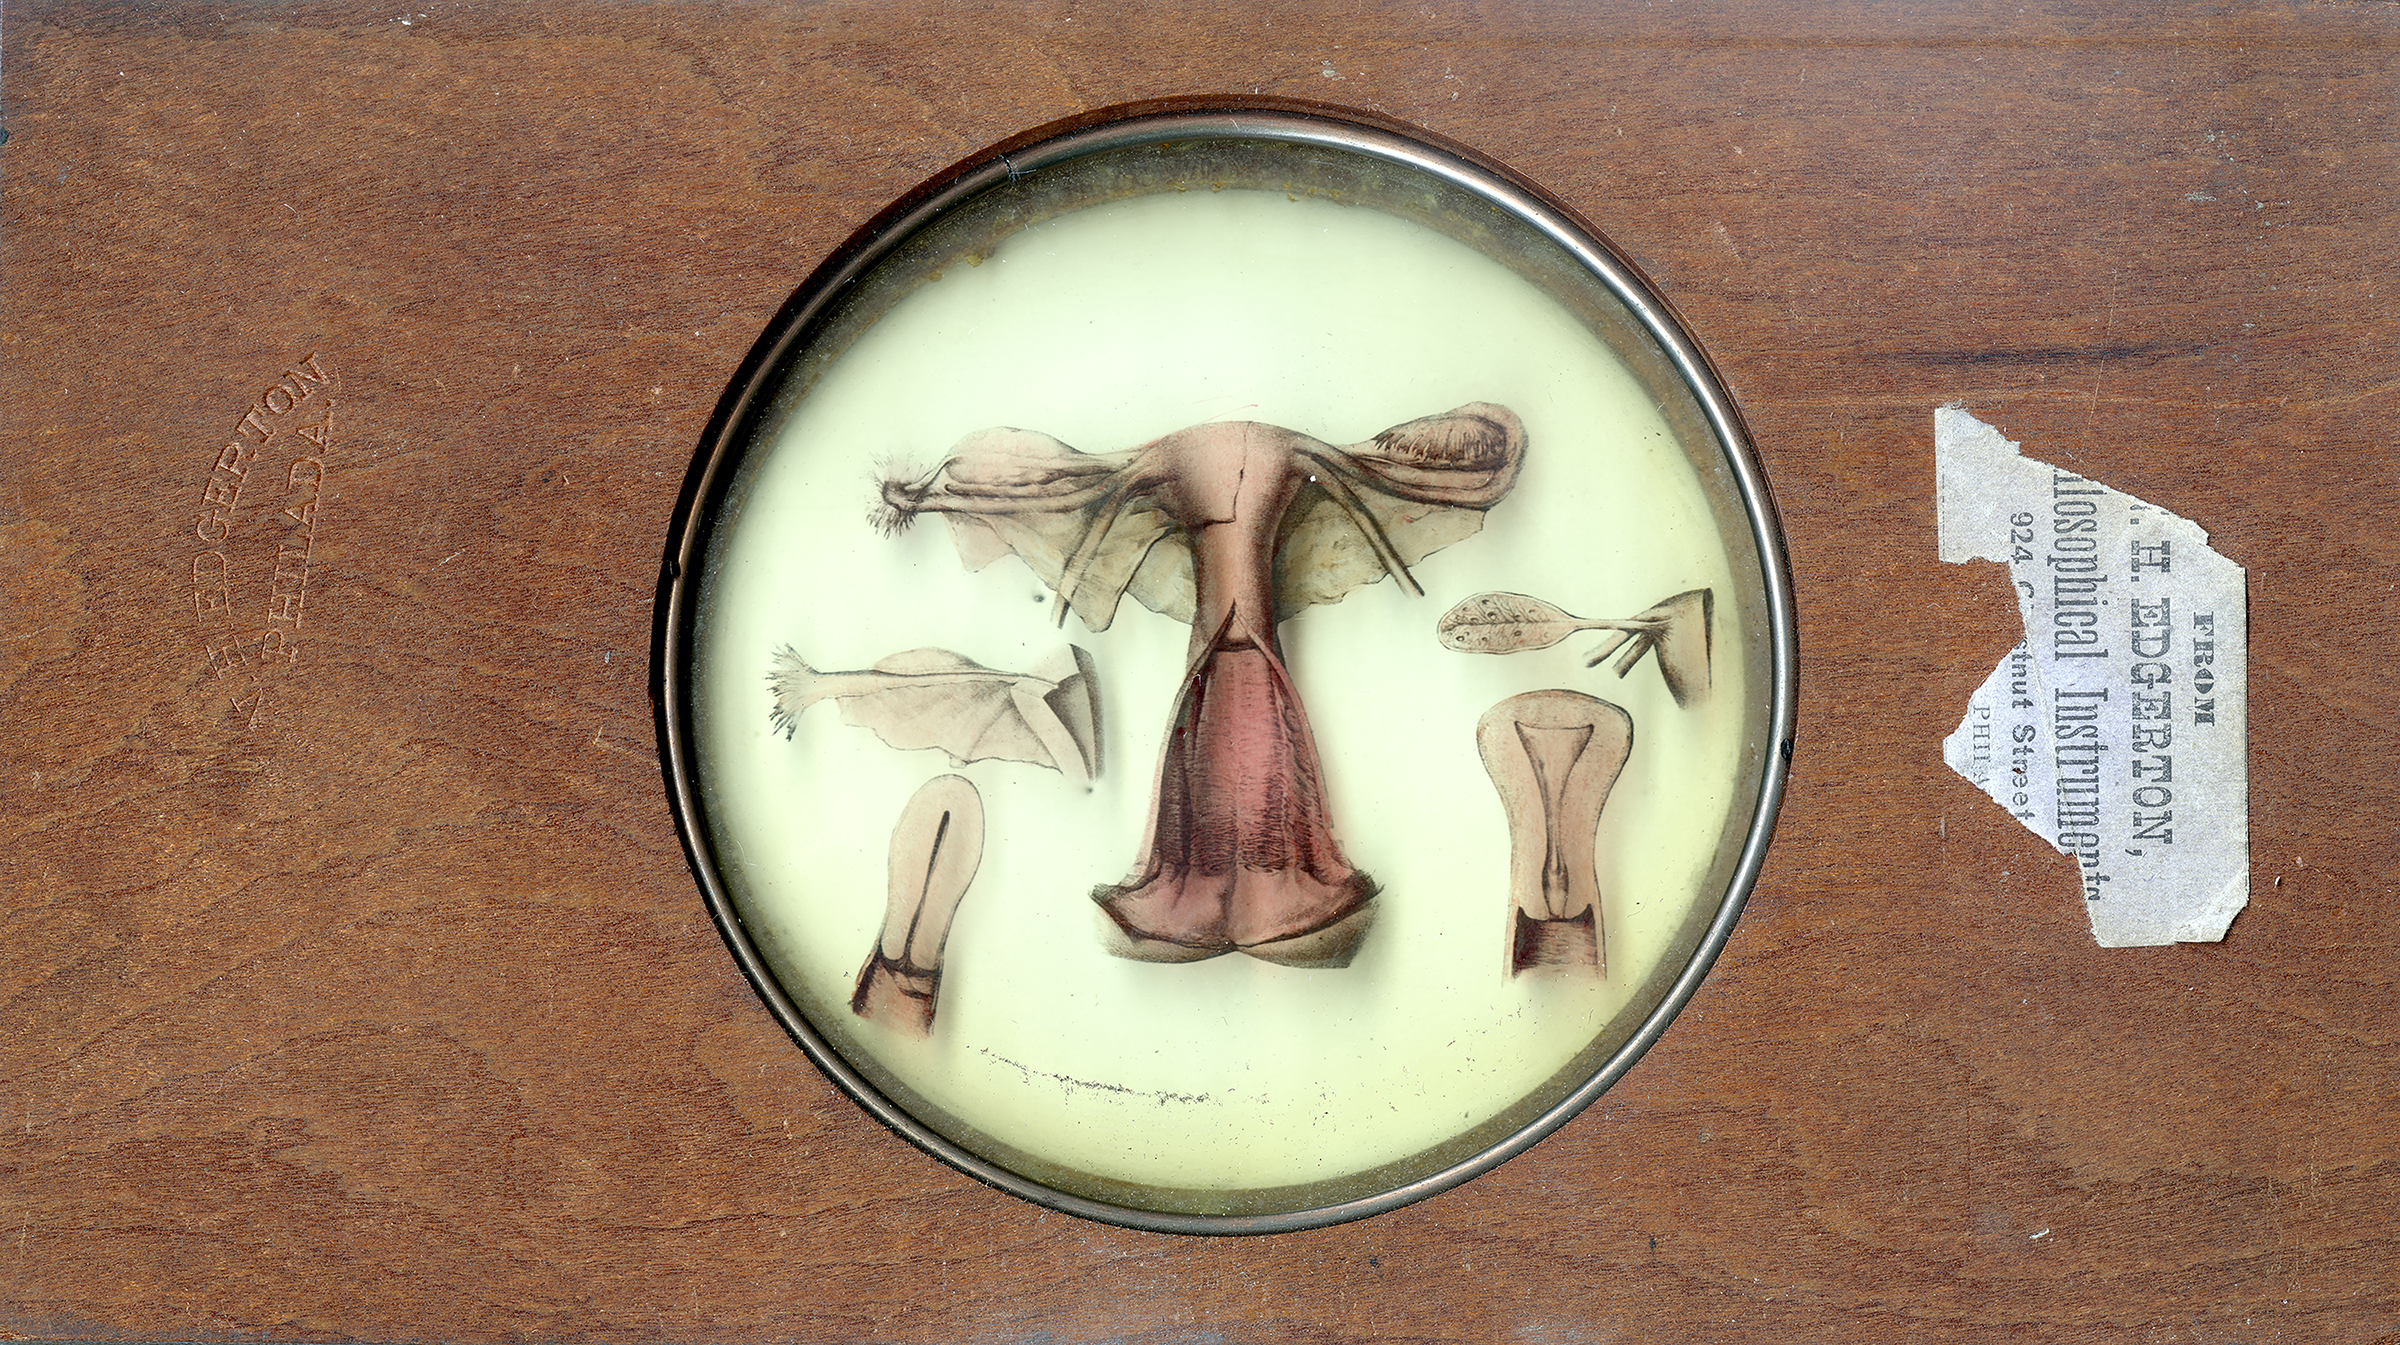 Glass lantern slide for teaching obstetrics.